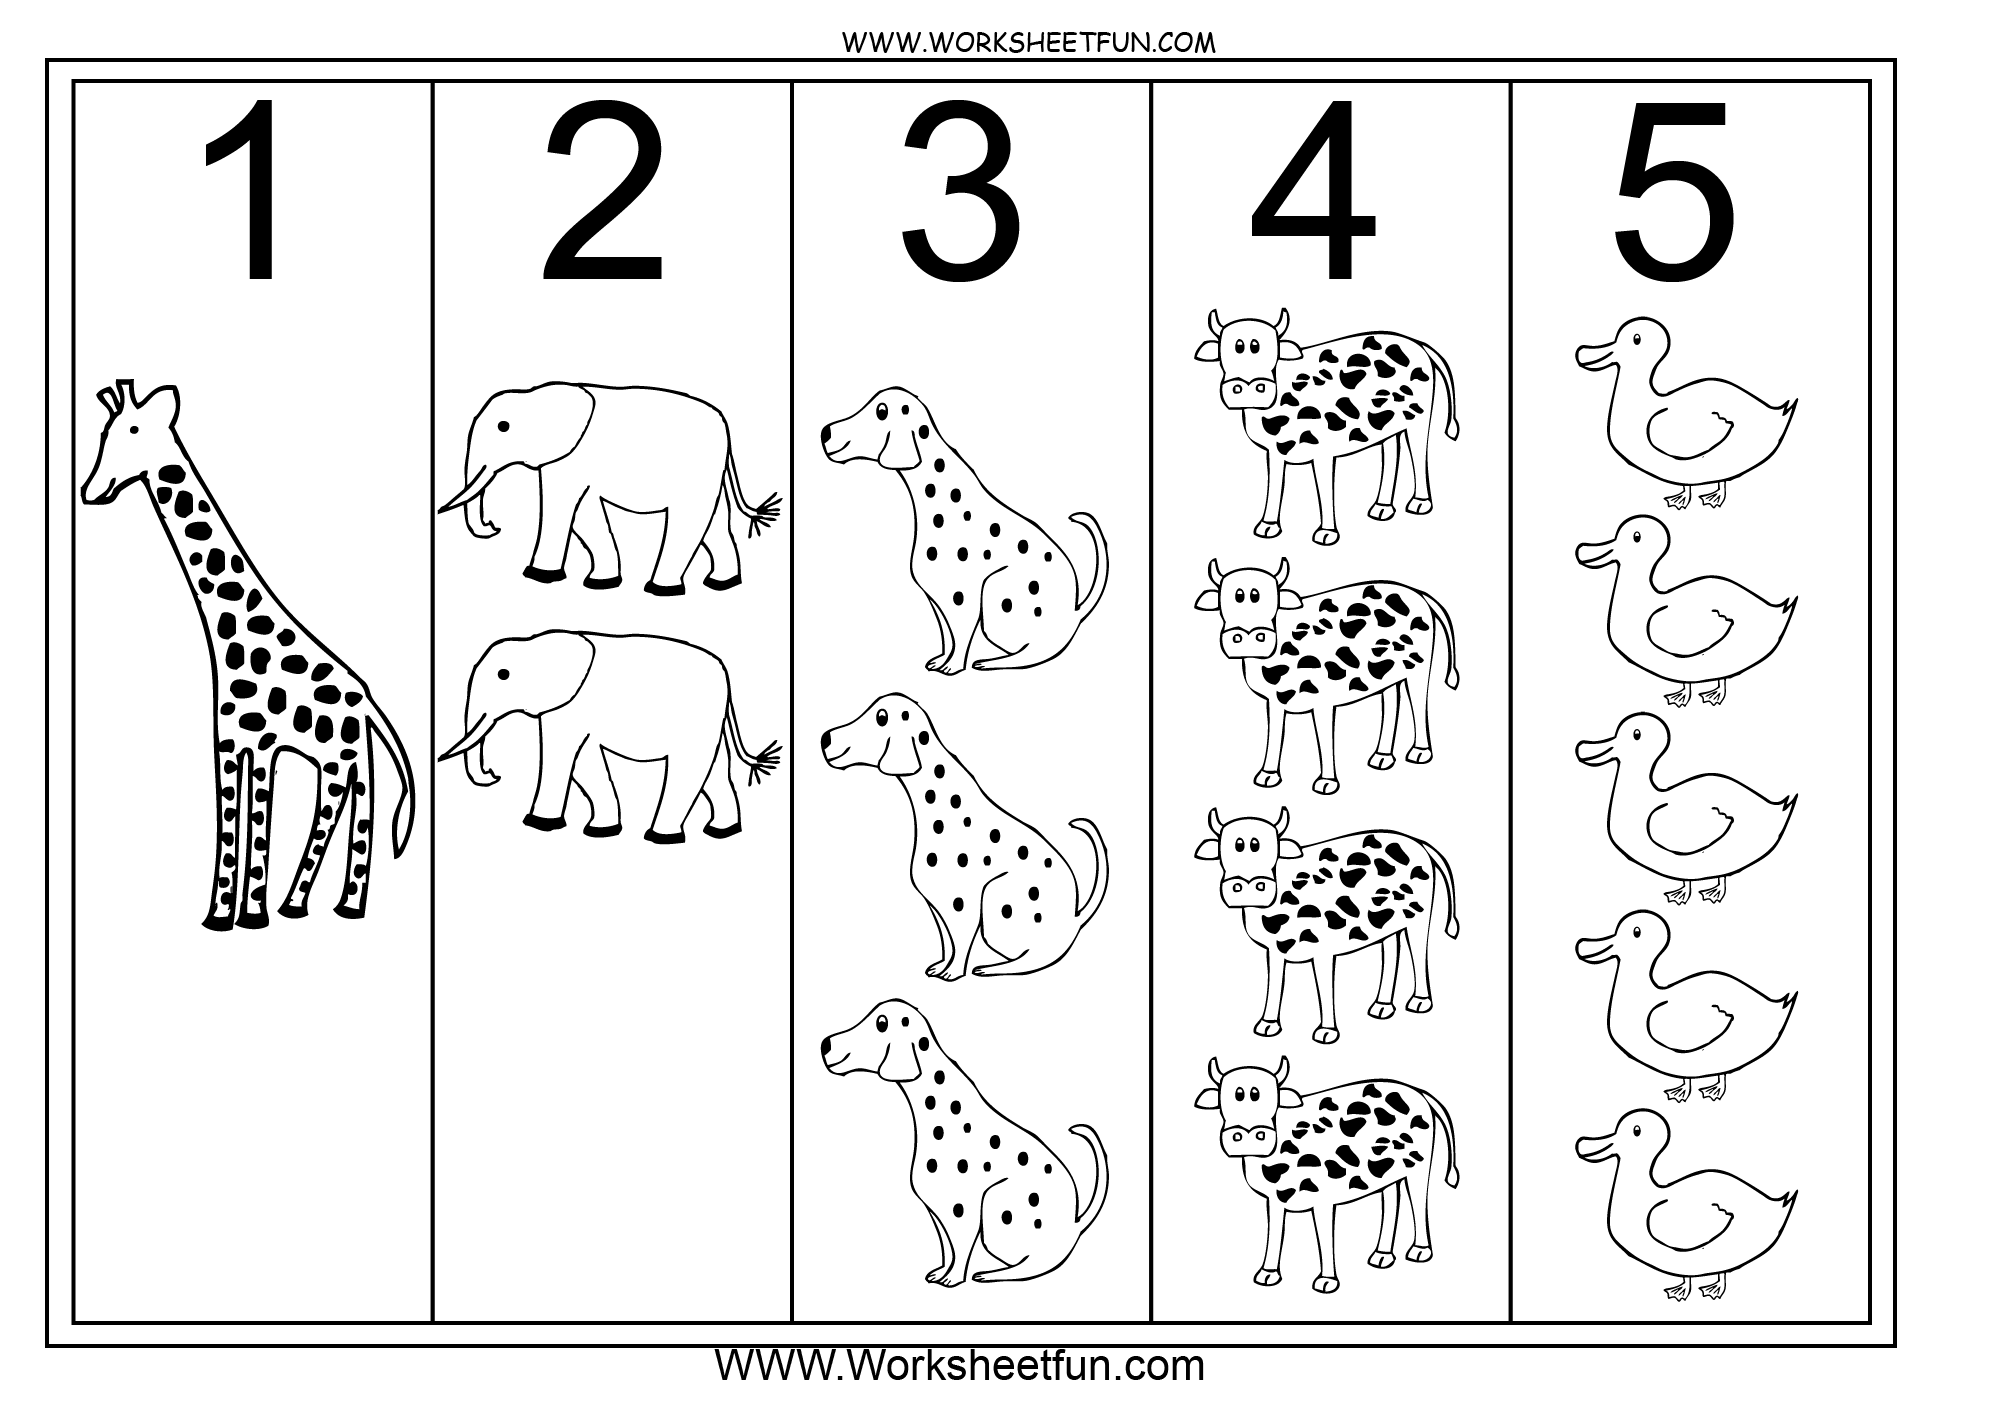 15 Best Images Of Numbers 1 Through 5 Worksheet